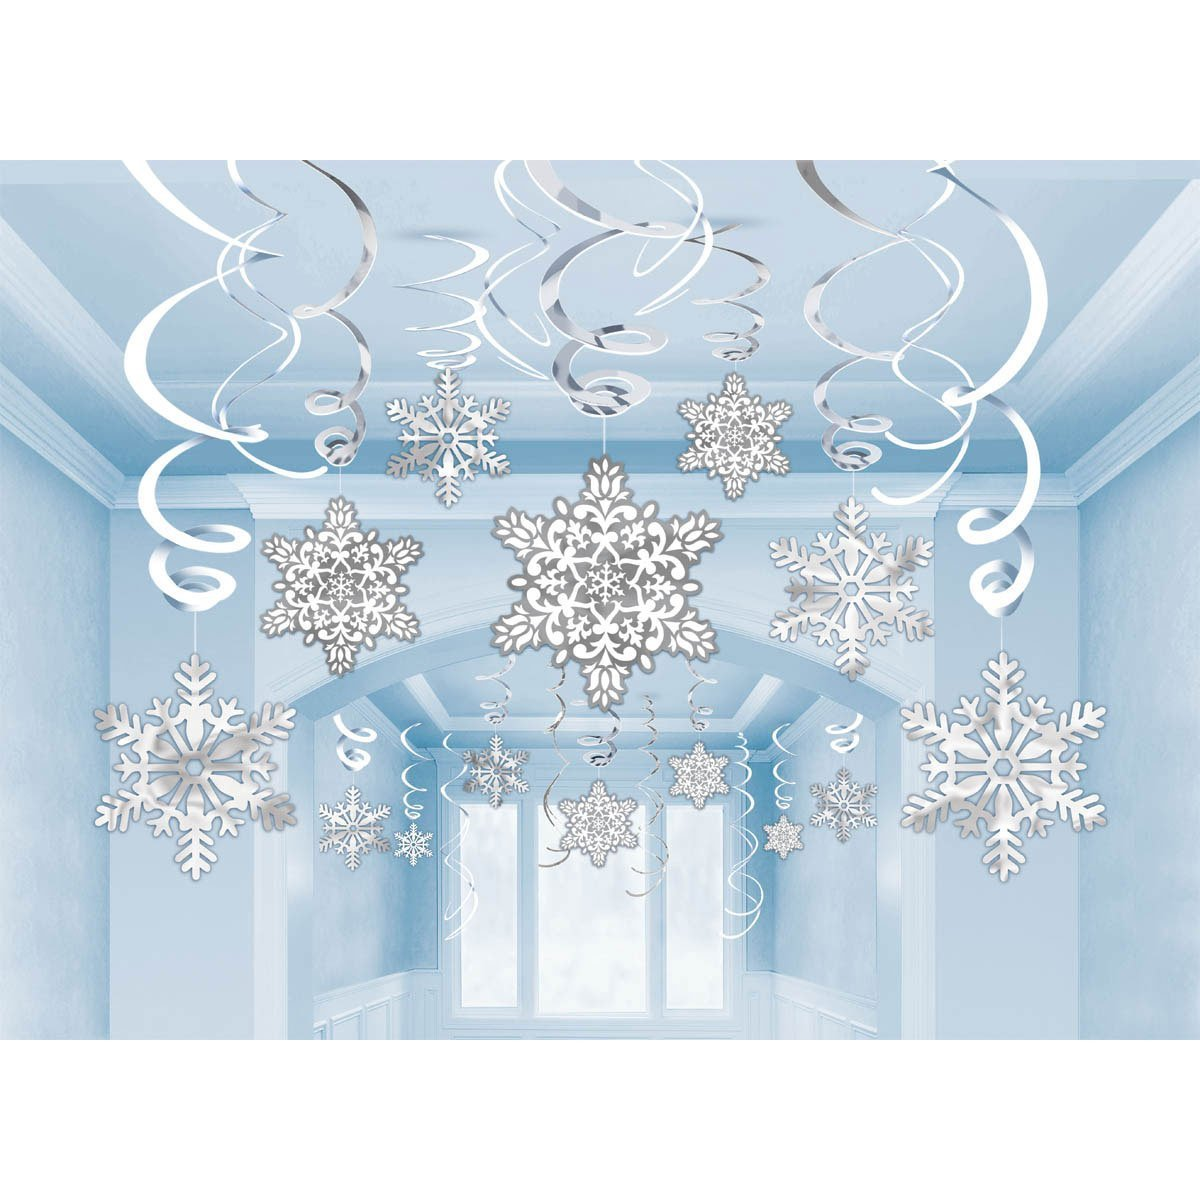 Christmas Snowflake Swirl Hanging Cutout Decorations - Pack of 30 Amscan